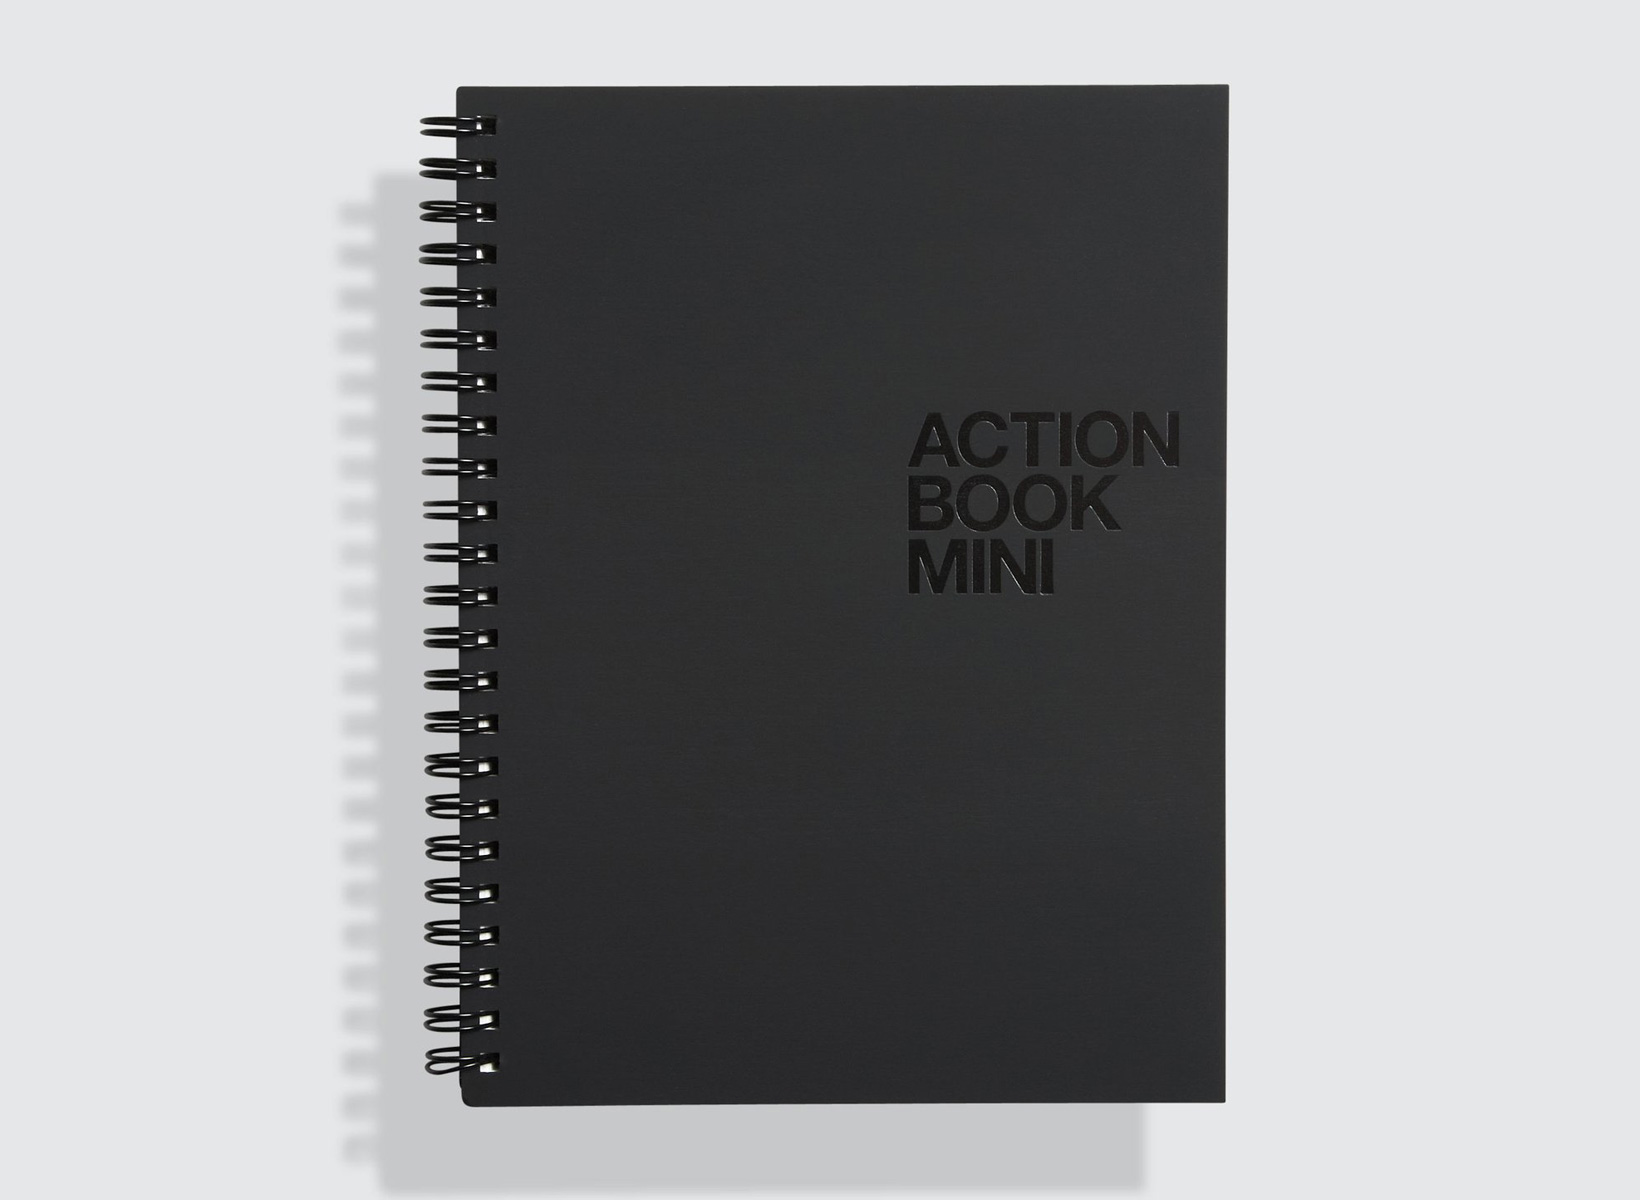 The Action Method notebook